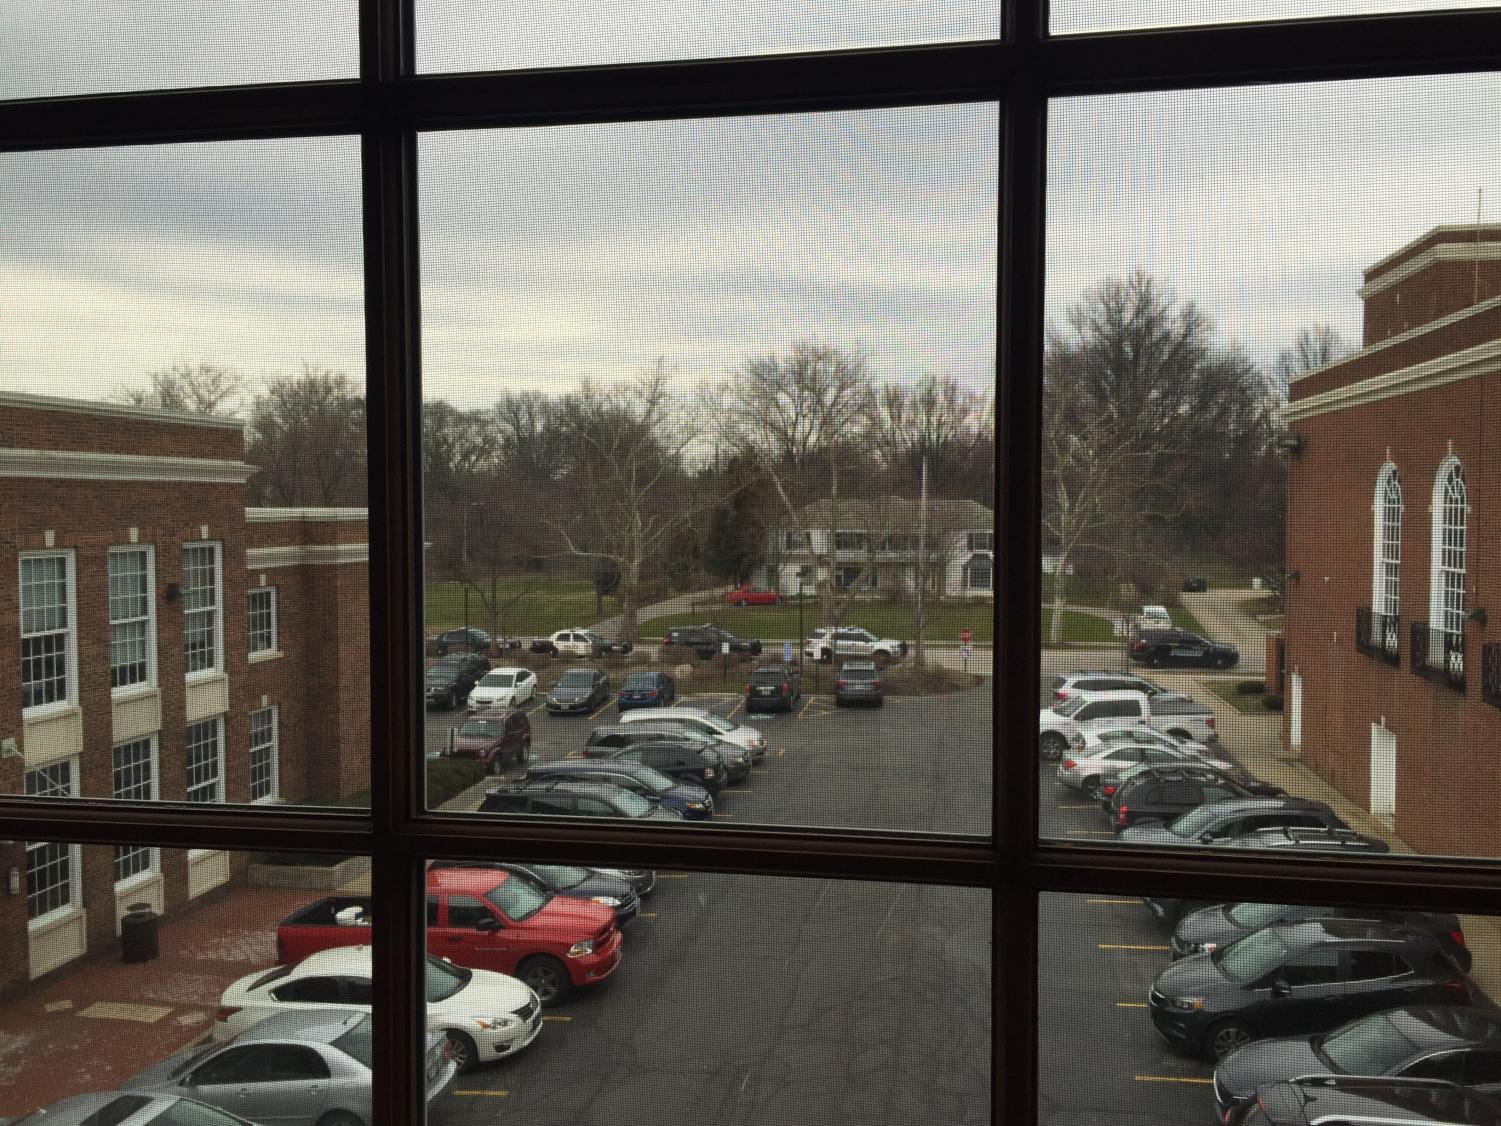 Police cars could be seen outside a window in the high school during a